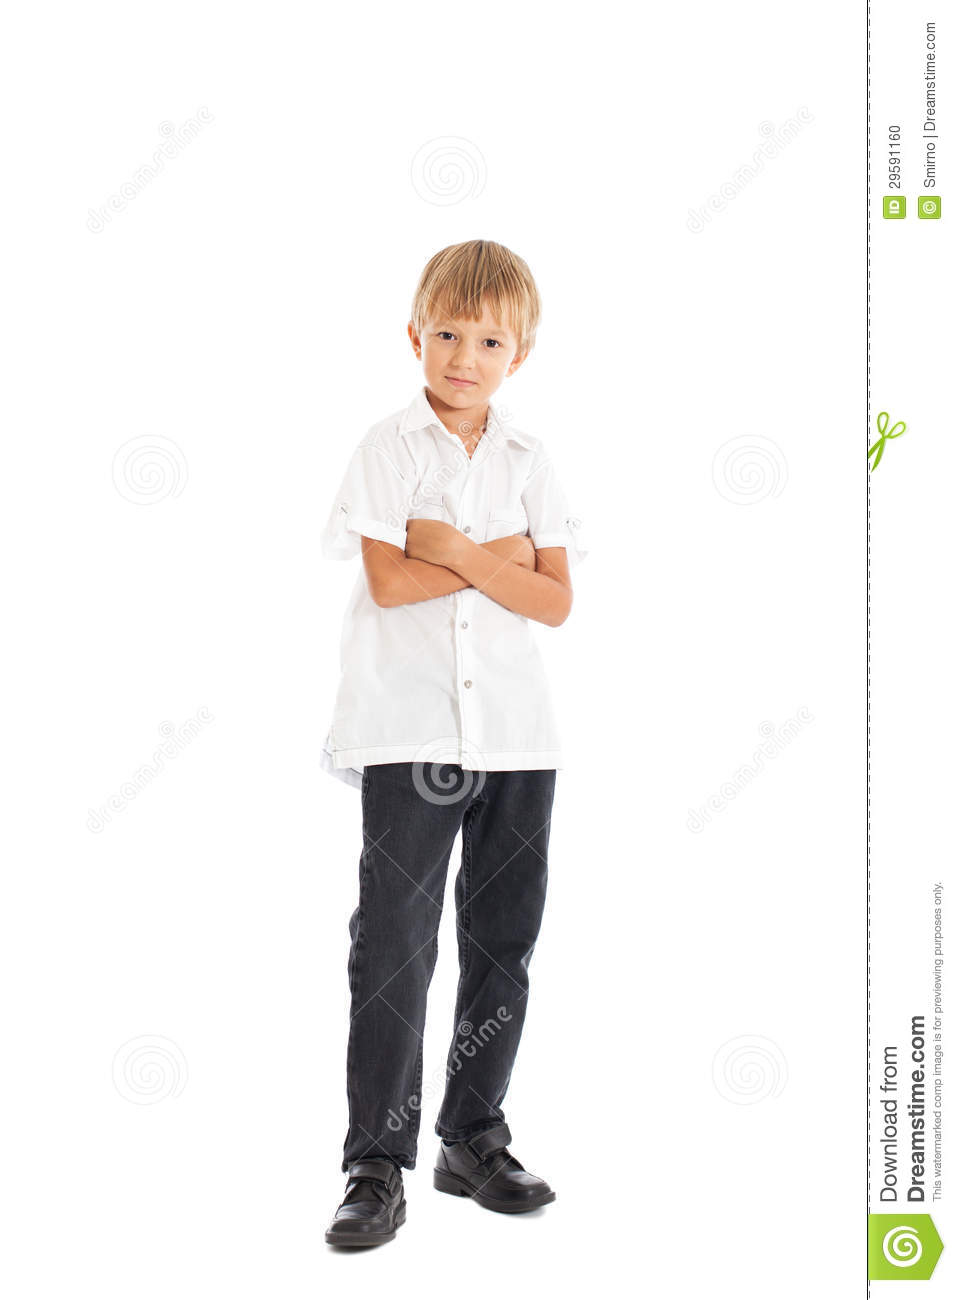 Boy Wearing White Shirt And Black Jeans Stock Photo Image Of